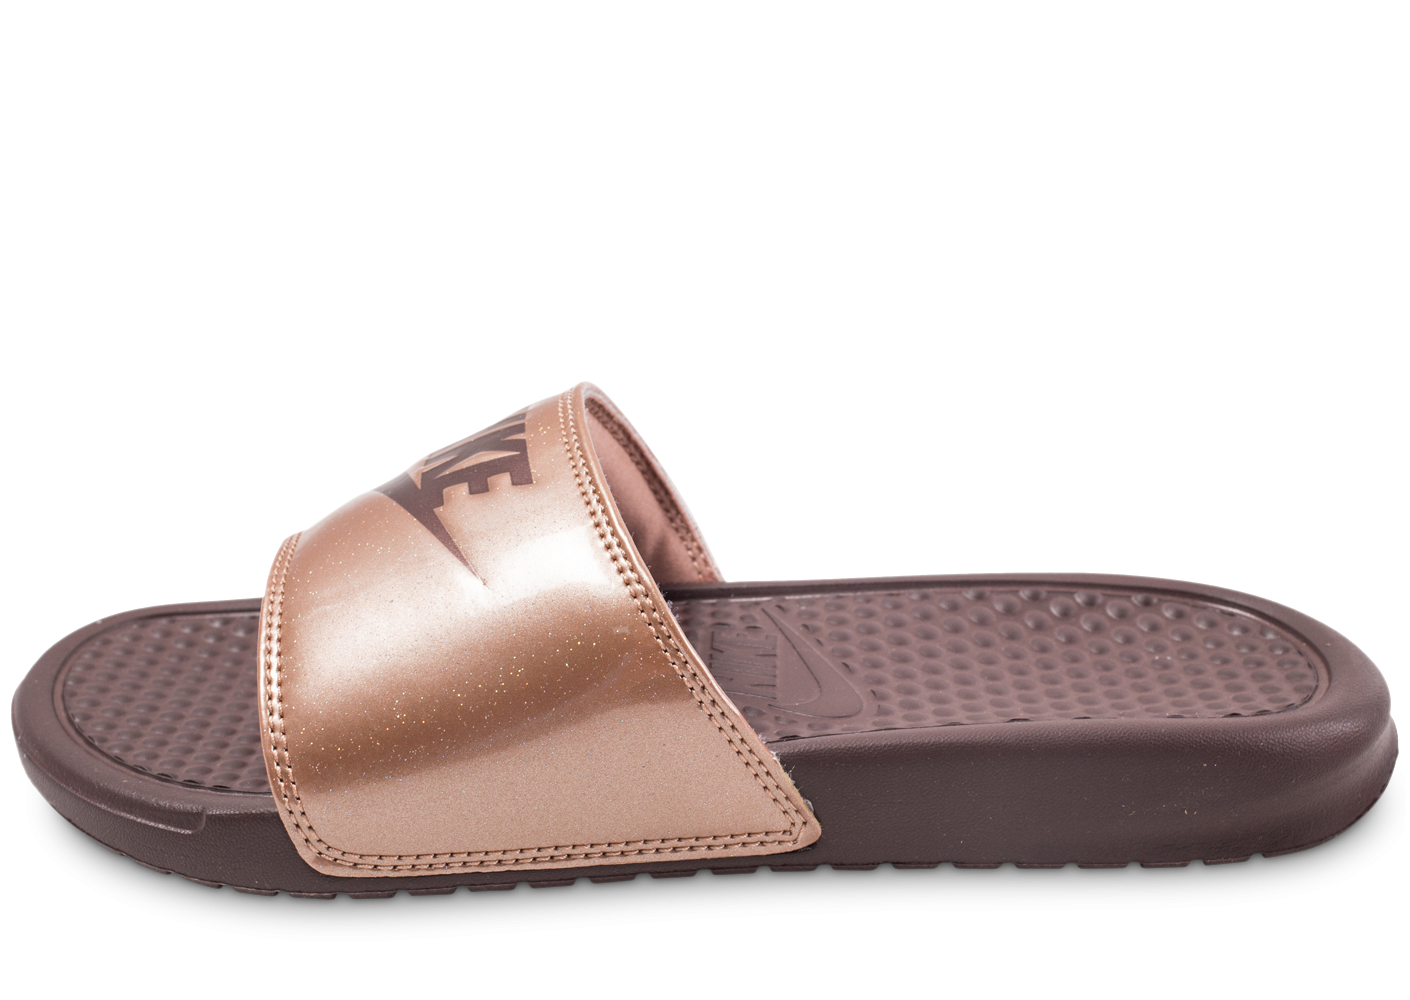 Sandales Bronze Benassi It Do Nike Chaussures Printed Femme Just UMpzqGSV